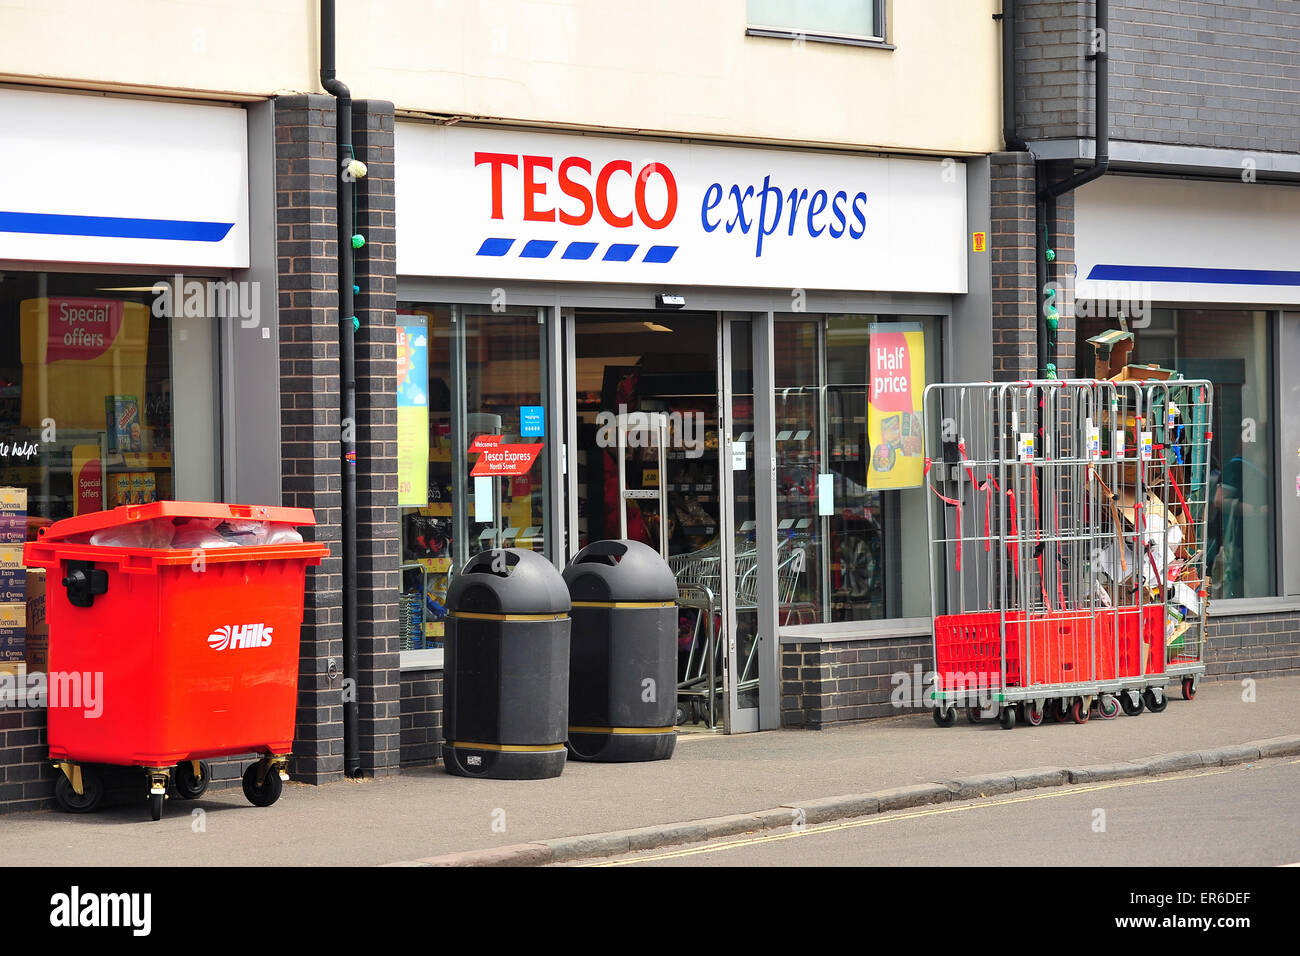 Bristol, UK. 28th May 2015 A bin of waste outside a Tesco Express supermarket in Bristol. After the French councillor - Stock Image